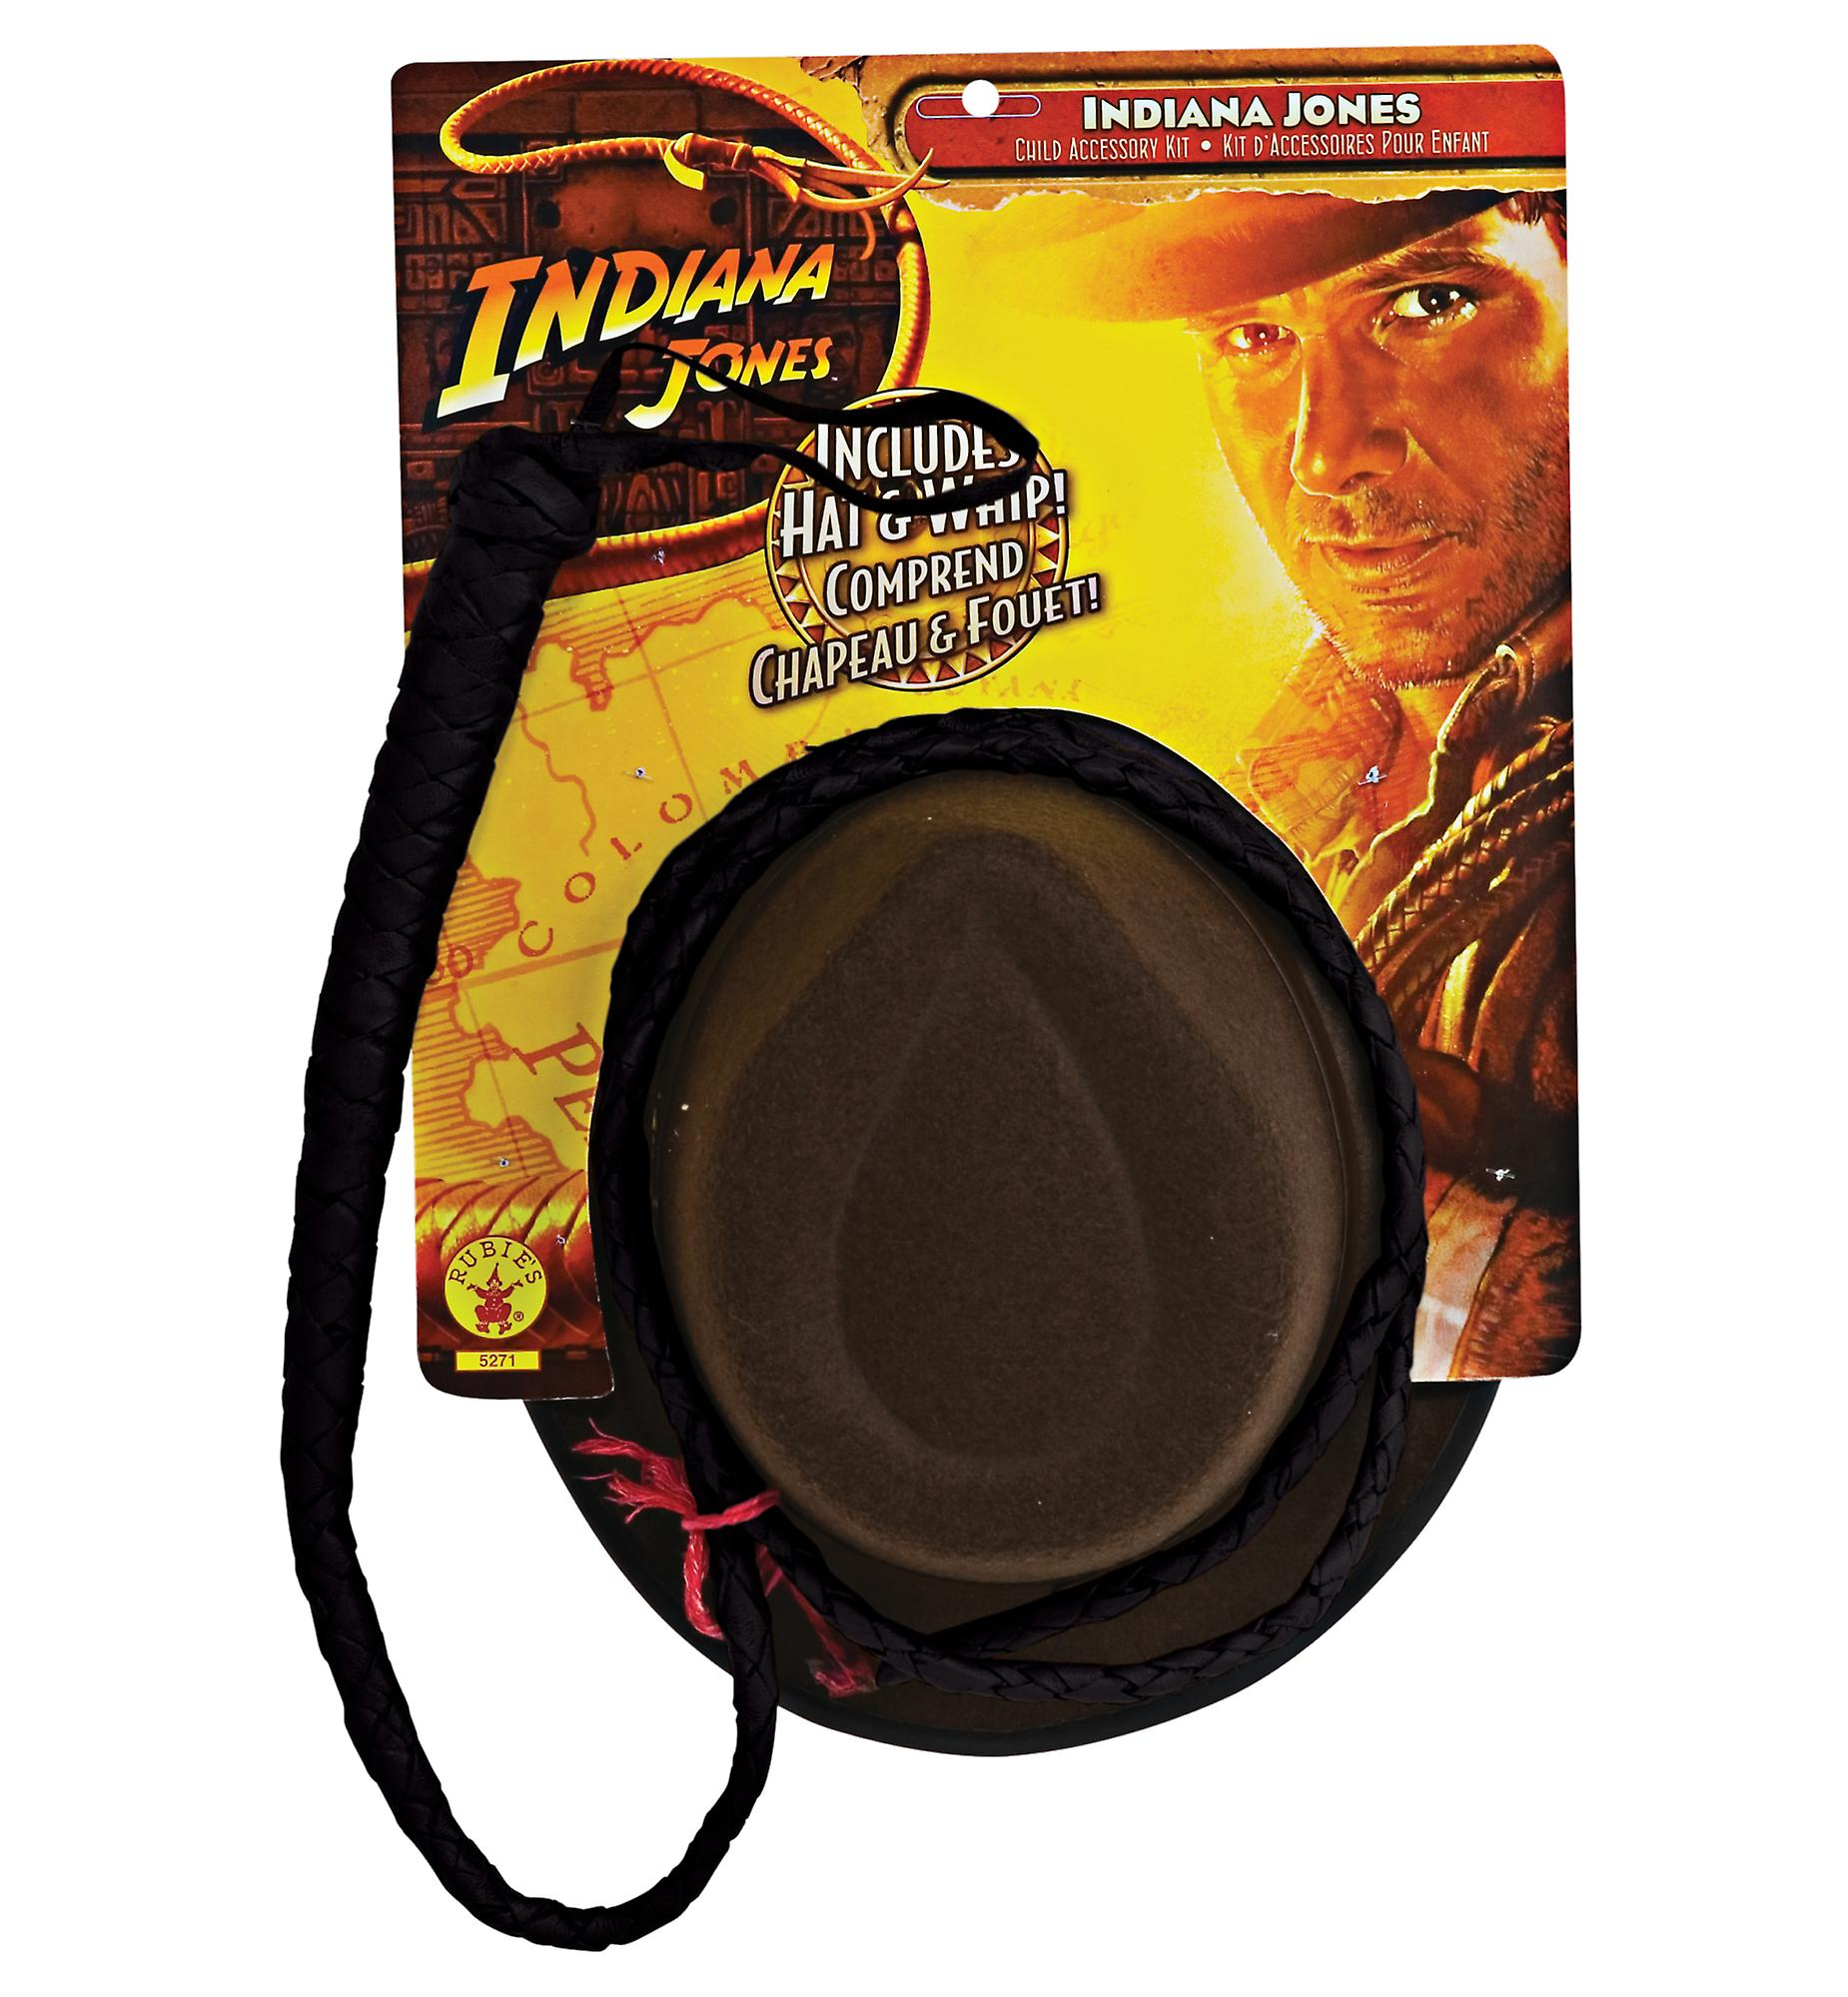 Indiana Jones Hero Cowboy Western Adult Men Costume Fedora Hat And Whip Set